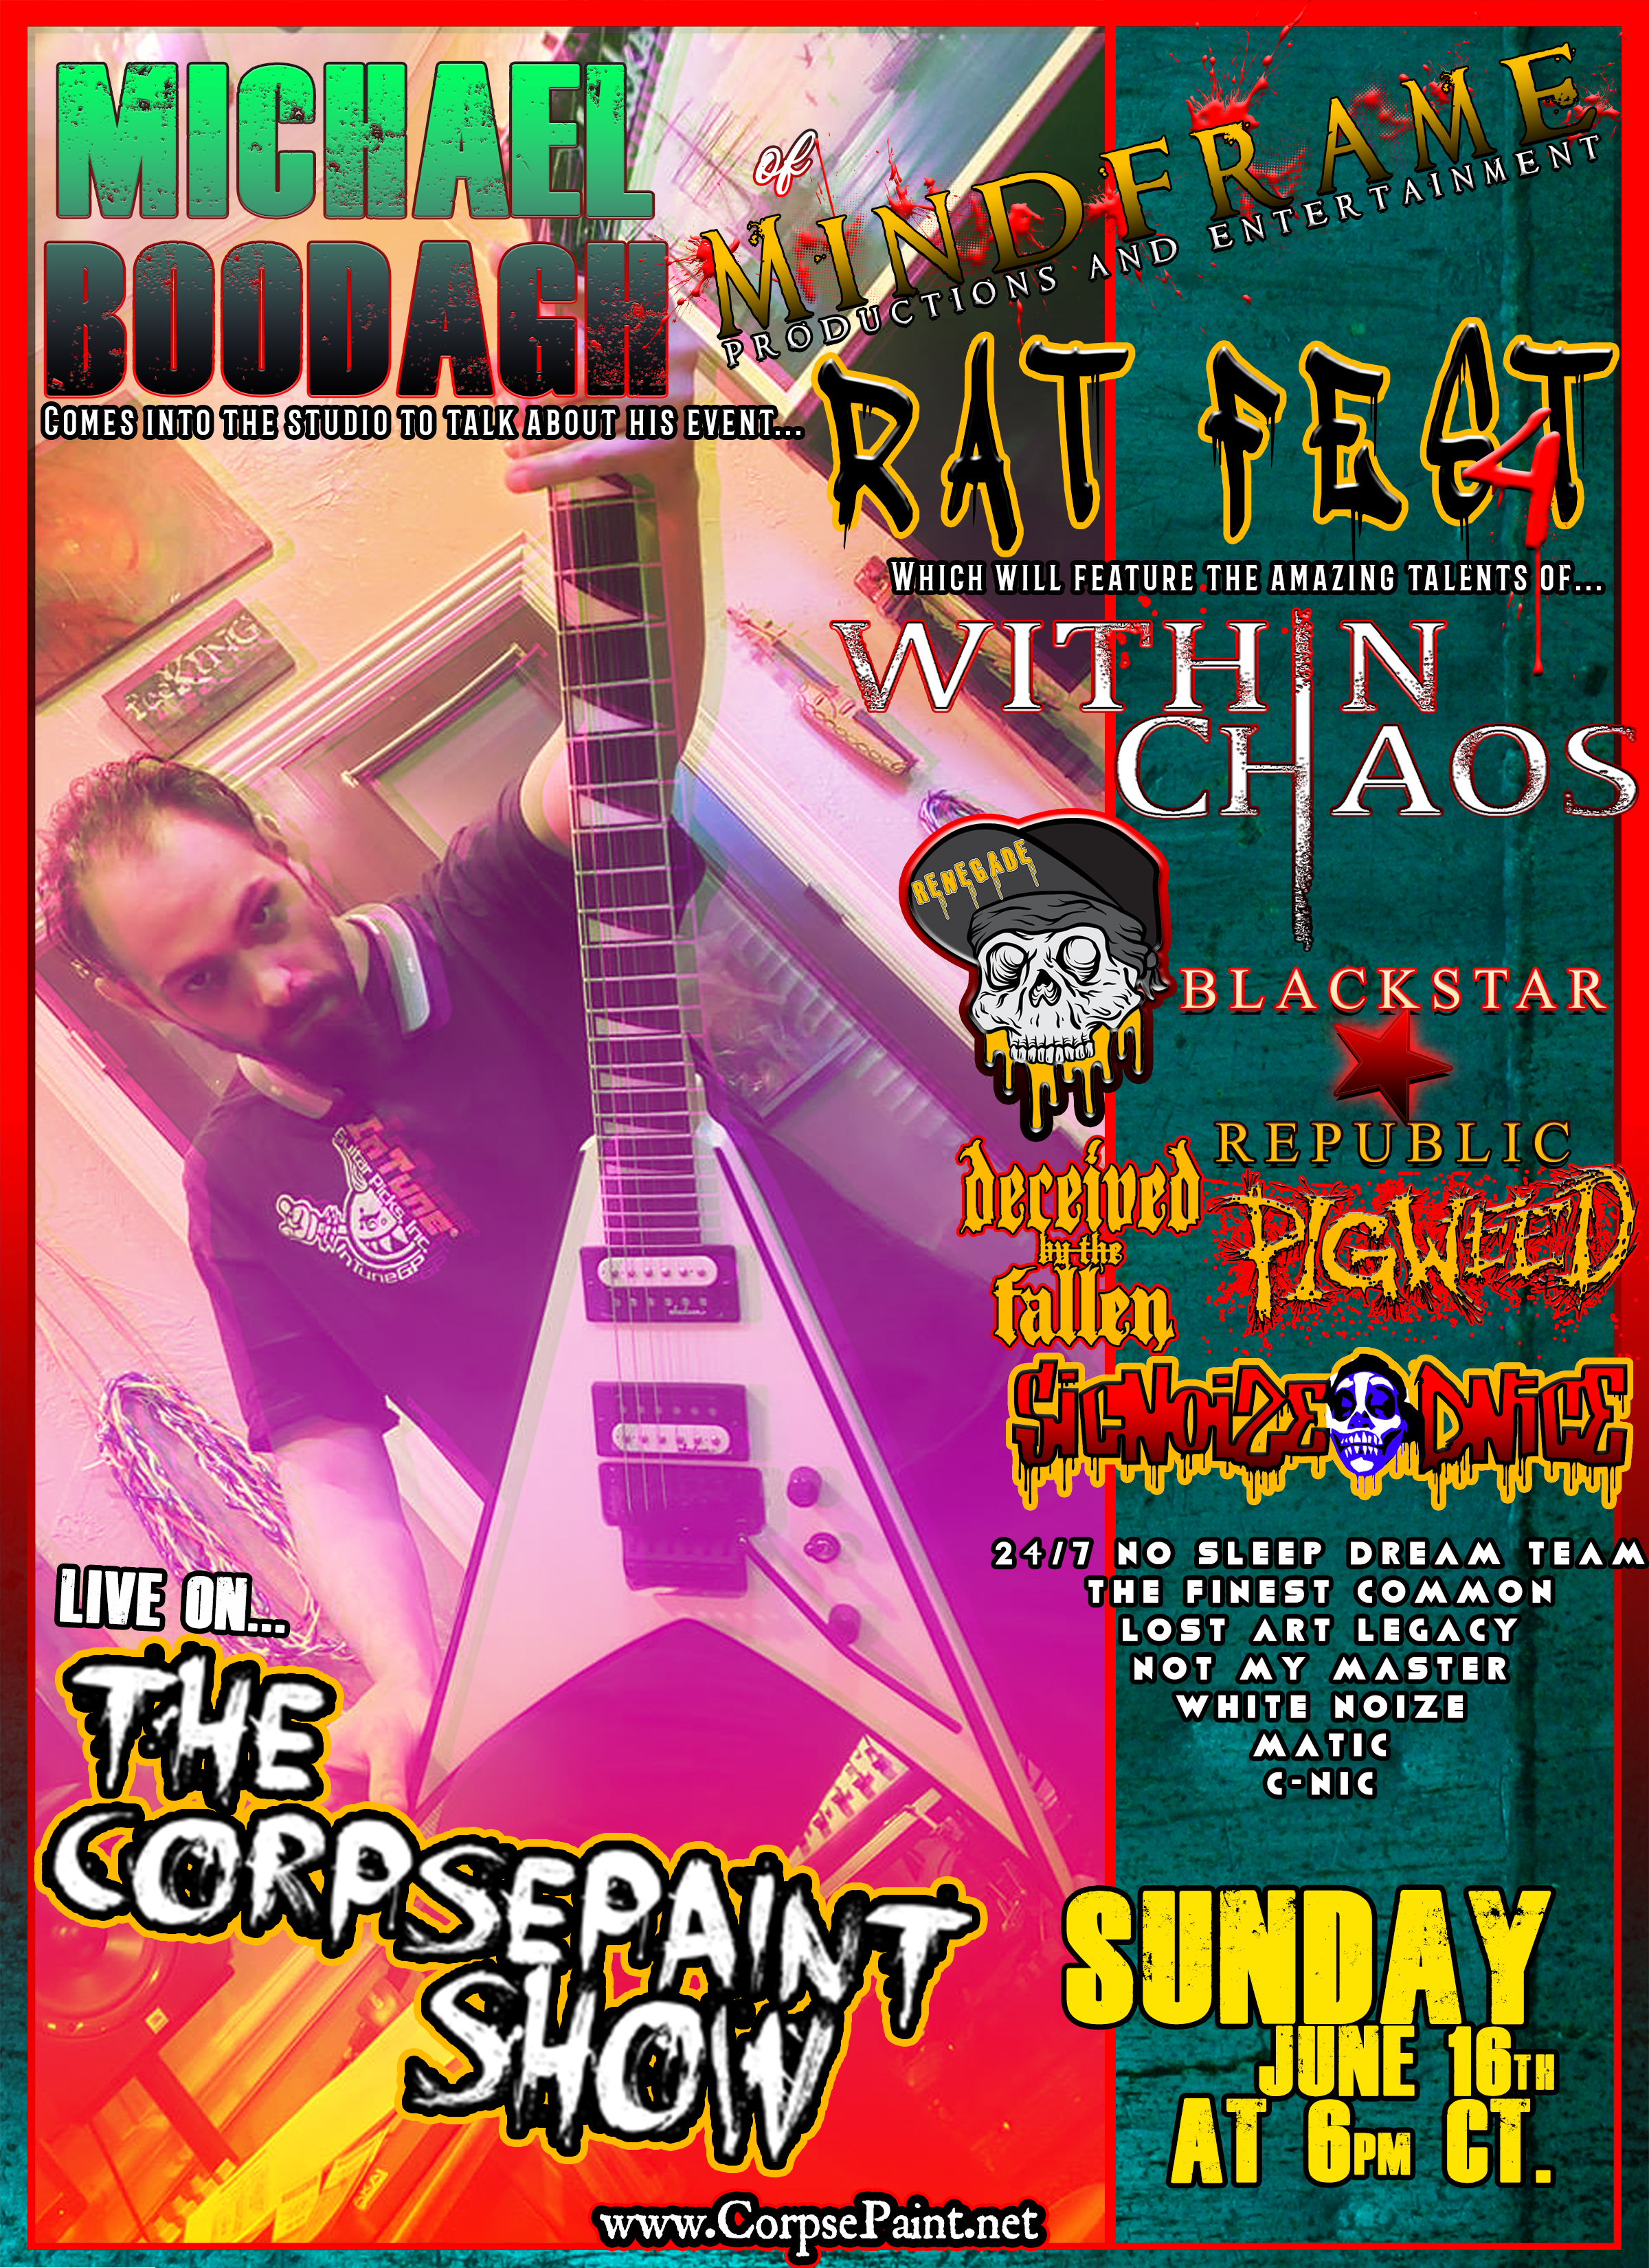 Episode 22 - June 16th 2019 Rat Fest 4